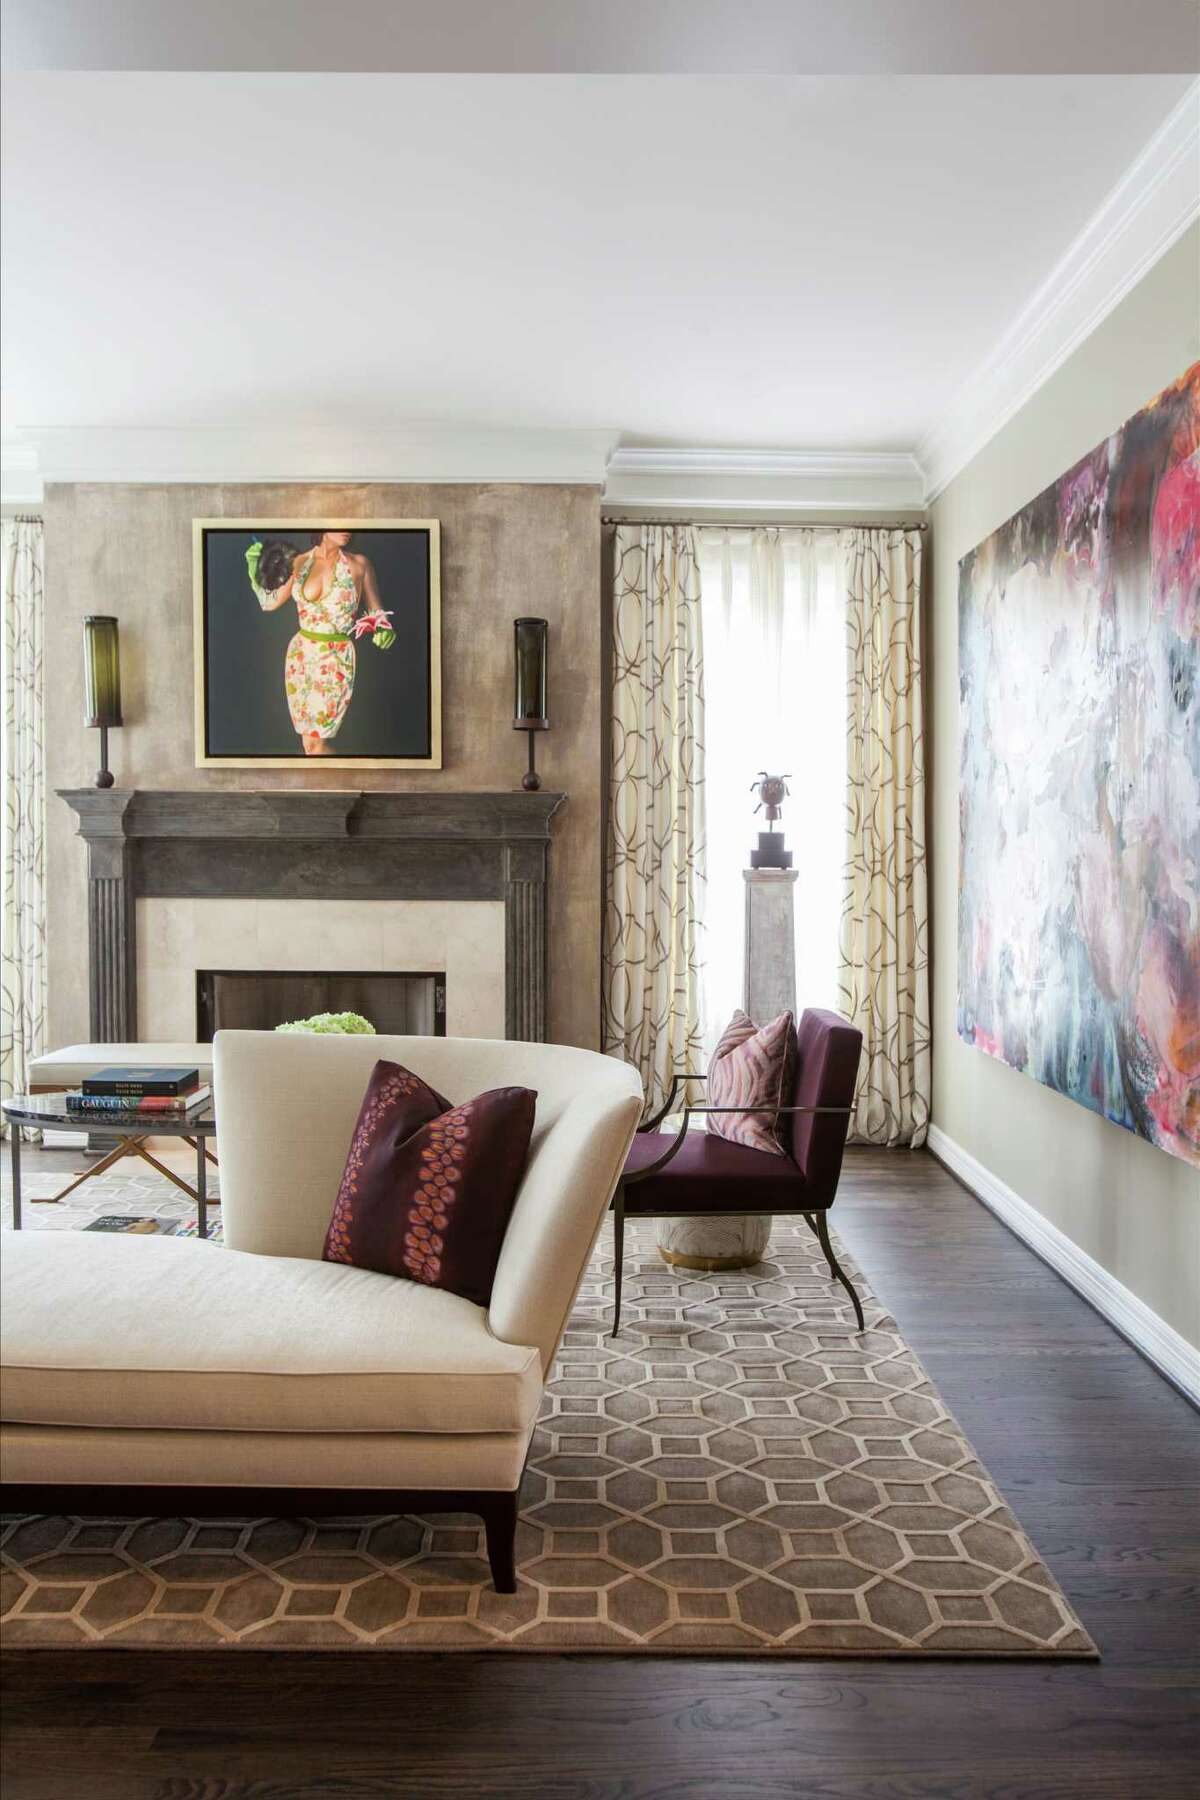 Neutral colors, including a Kravet rug and a tête-à-tête sofa by Donghia, are set against the newly espresso-stained hardwood floors in the formal living room of this Tanglewood home.